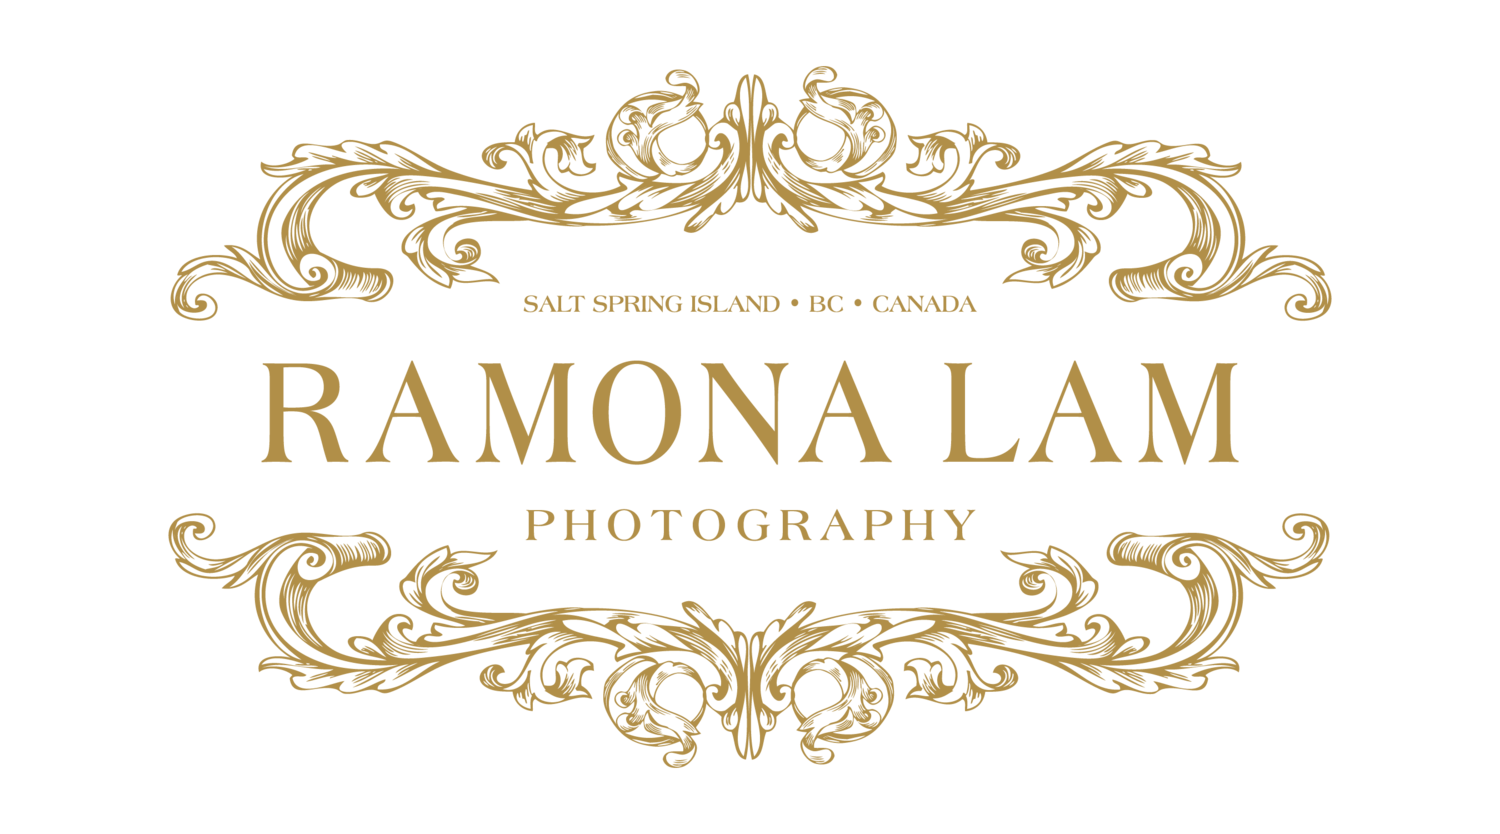 Ramona Lam photography